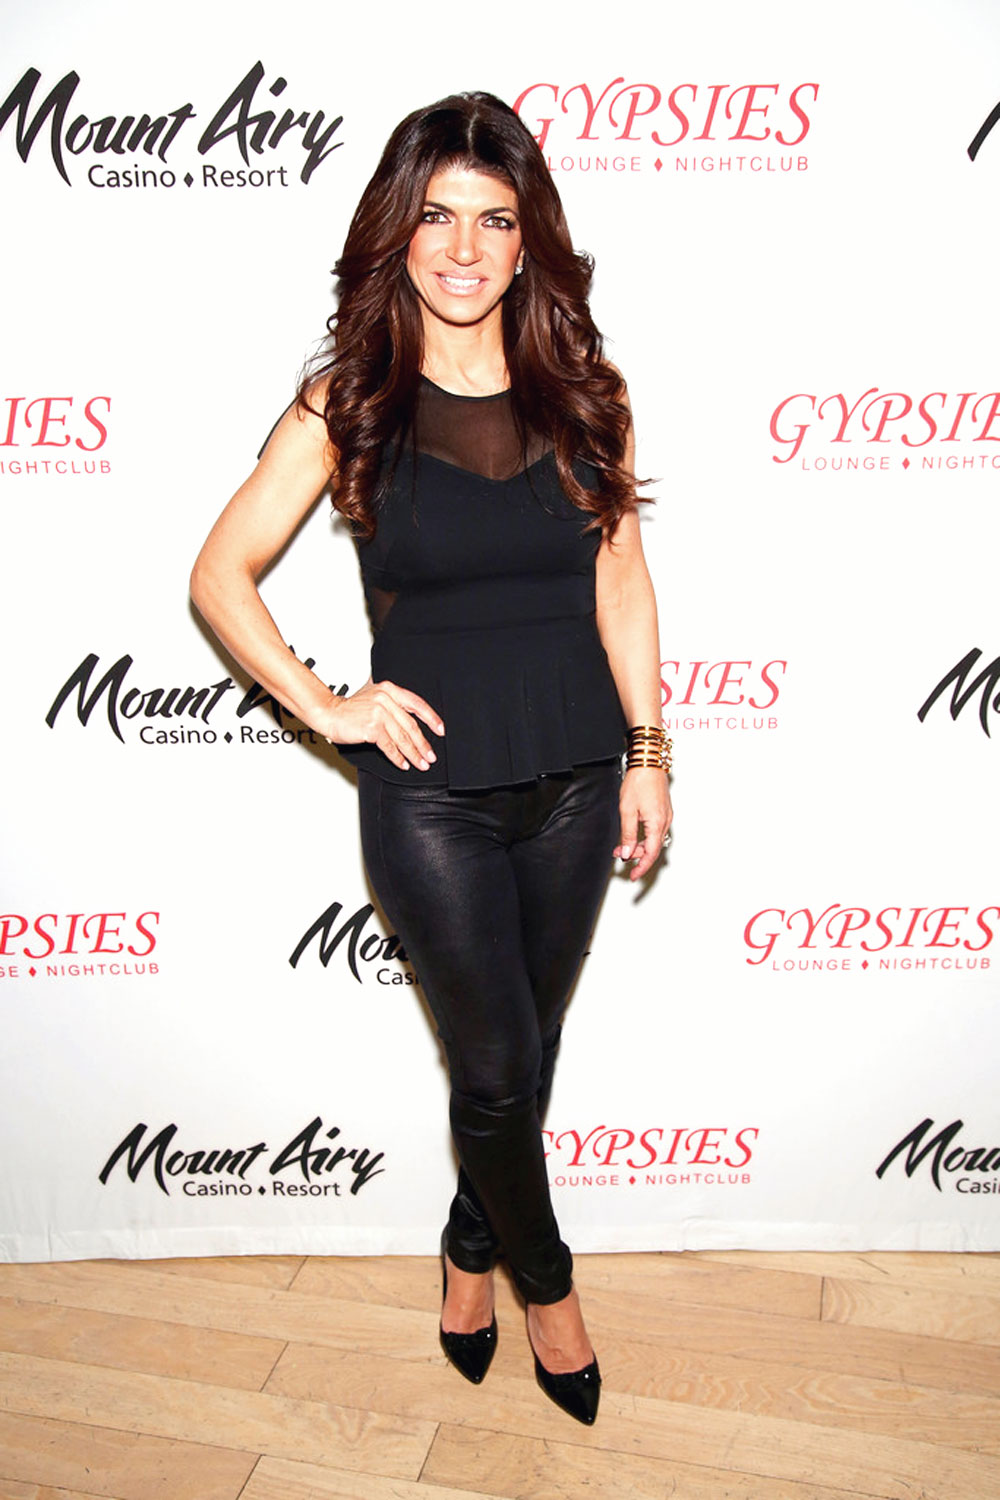 Teresa Giudice Appears At Mount Airy Resort Casino For A